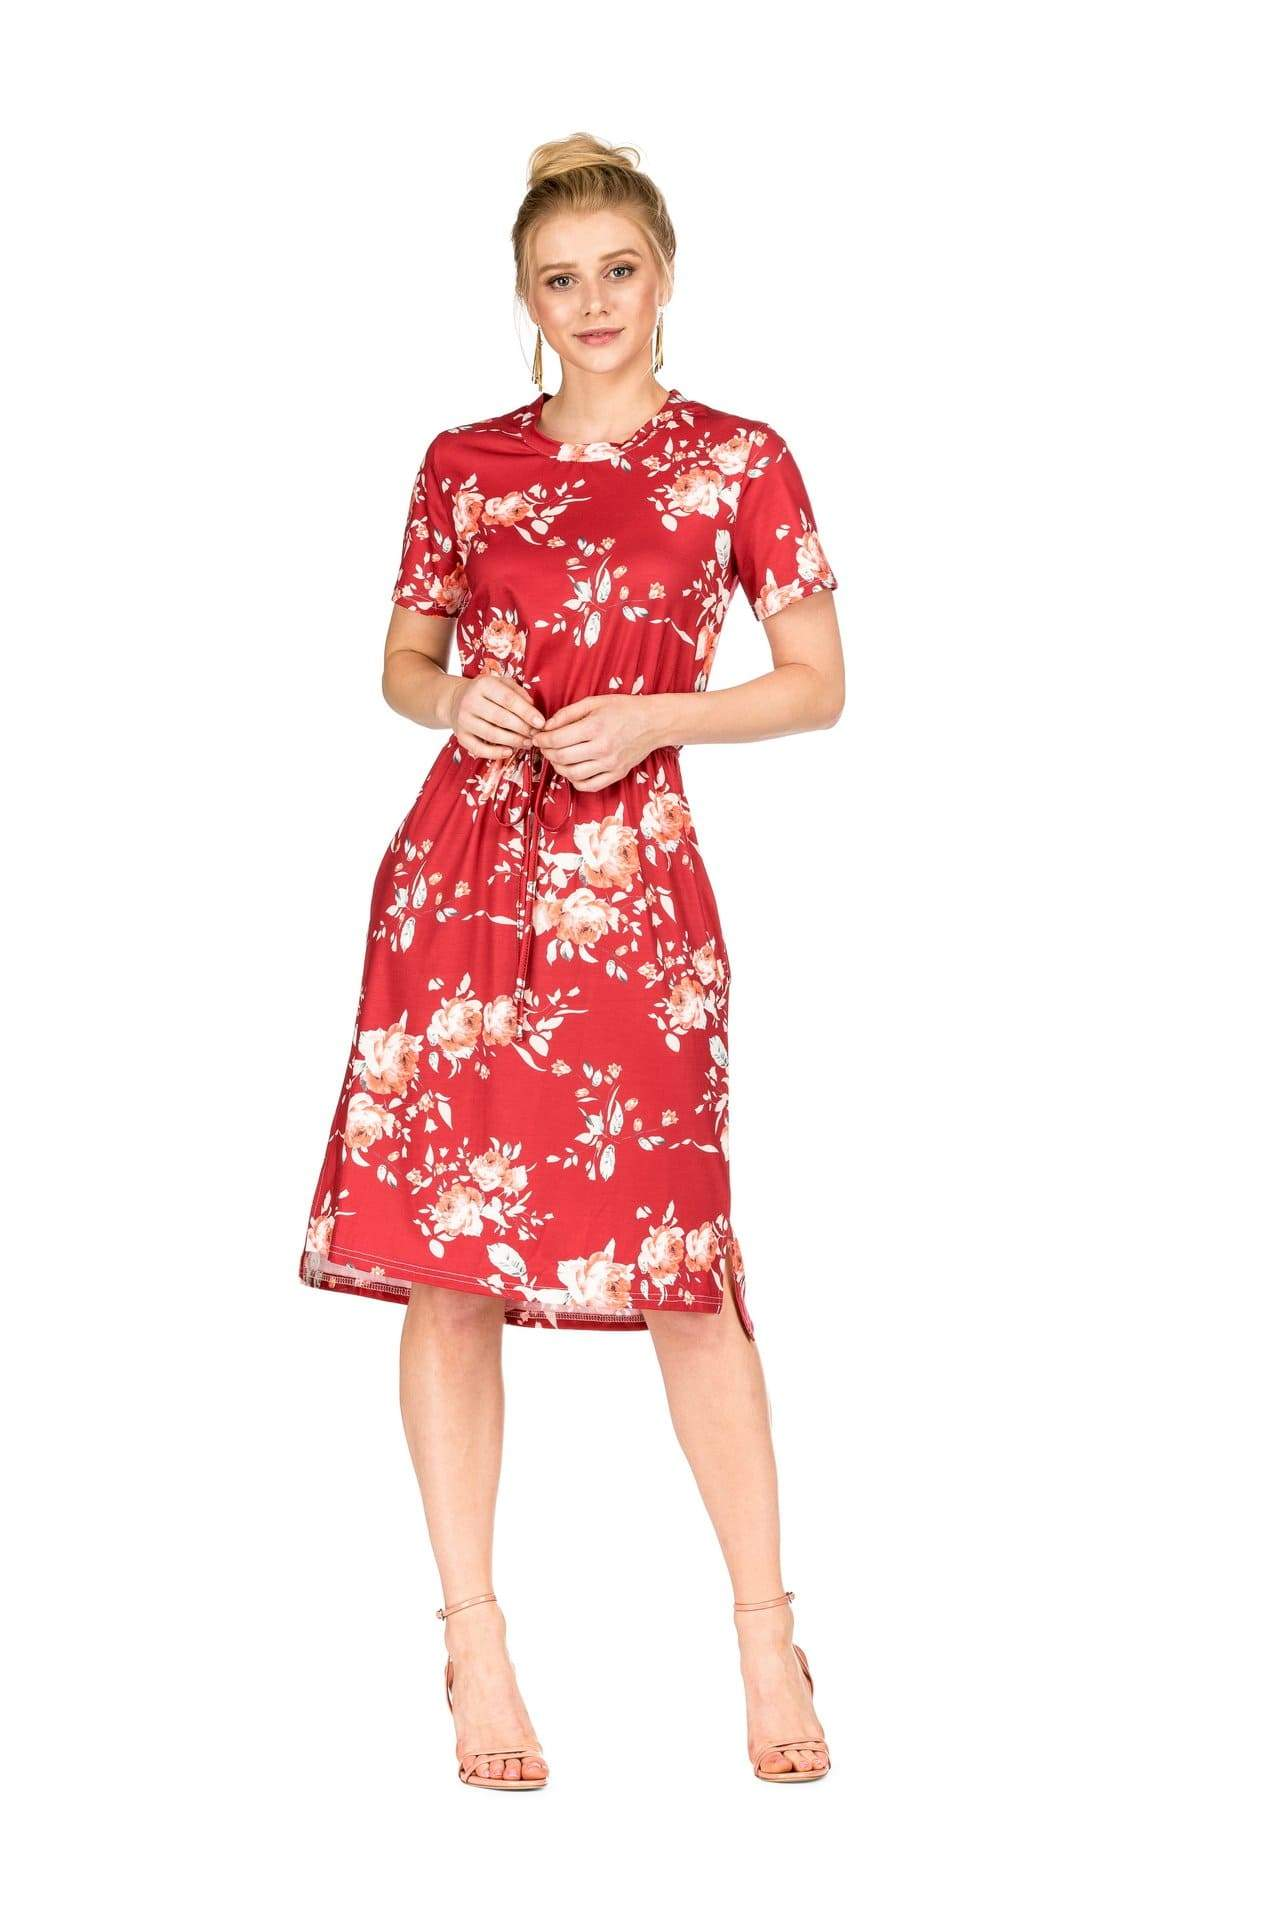 DAILYHAUTE Women's dress RED / S Haute Edition Women's Floral Casual Mid Dress With Pockets